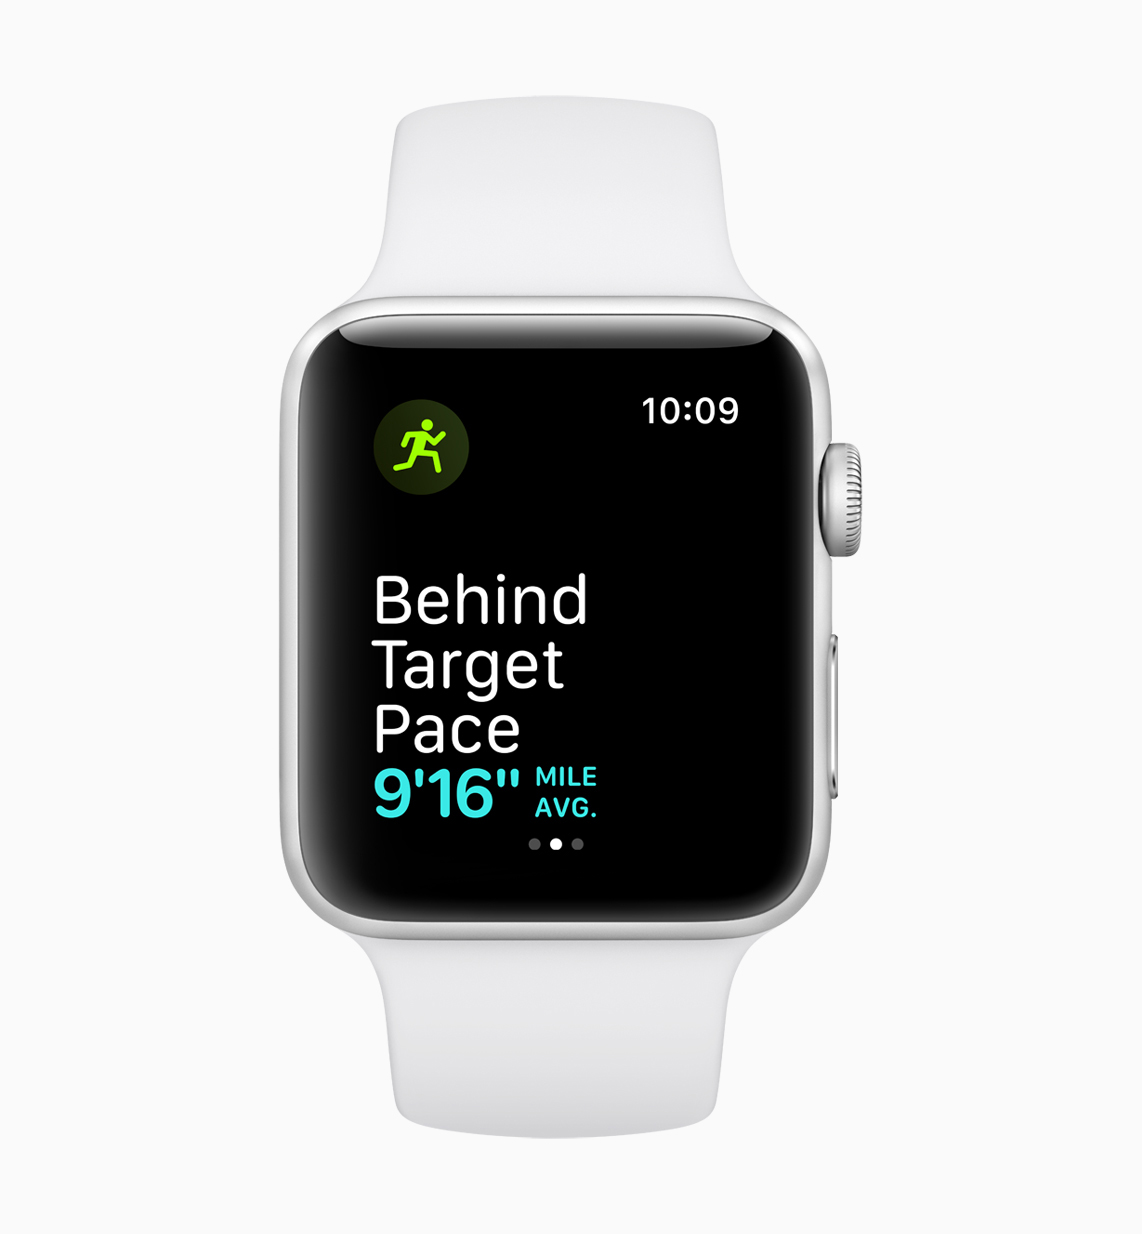 Apple-watchOS_5-Running-Features-02-screen-06042018.jpg